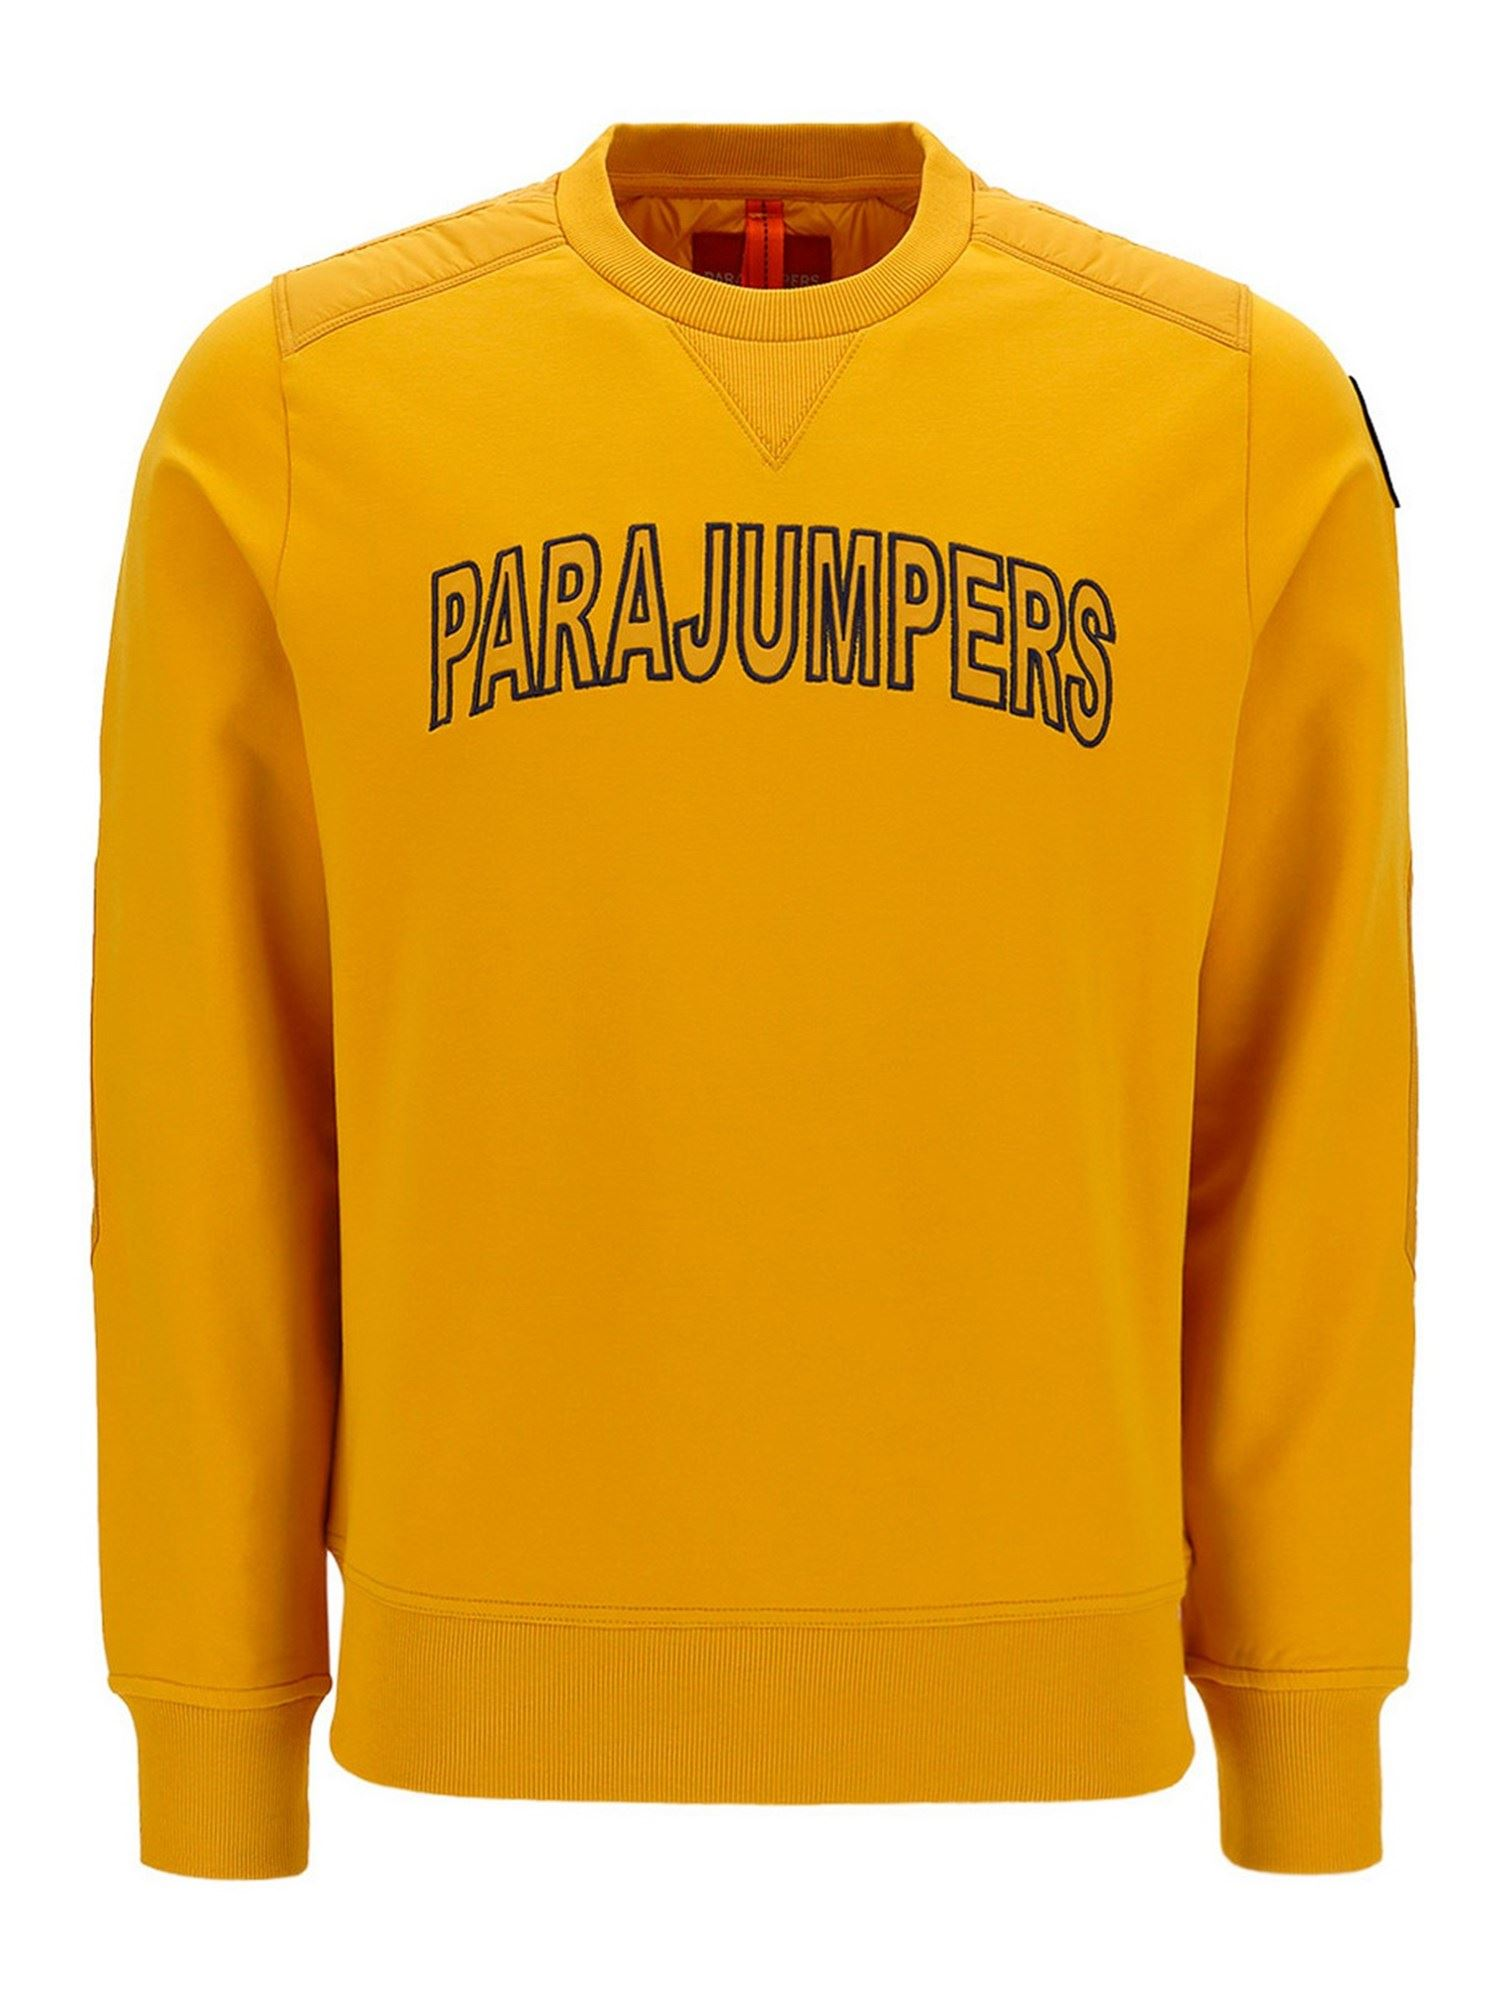 Parajumpers Cottons LOGO EMBROIDERY SWEATSHIRT IN YELLOW